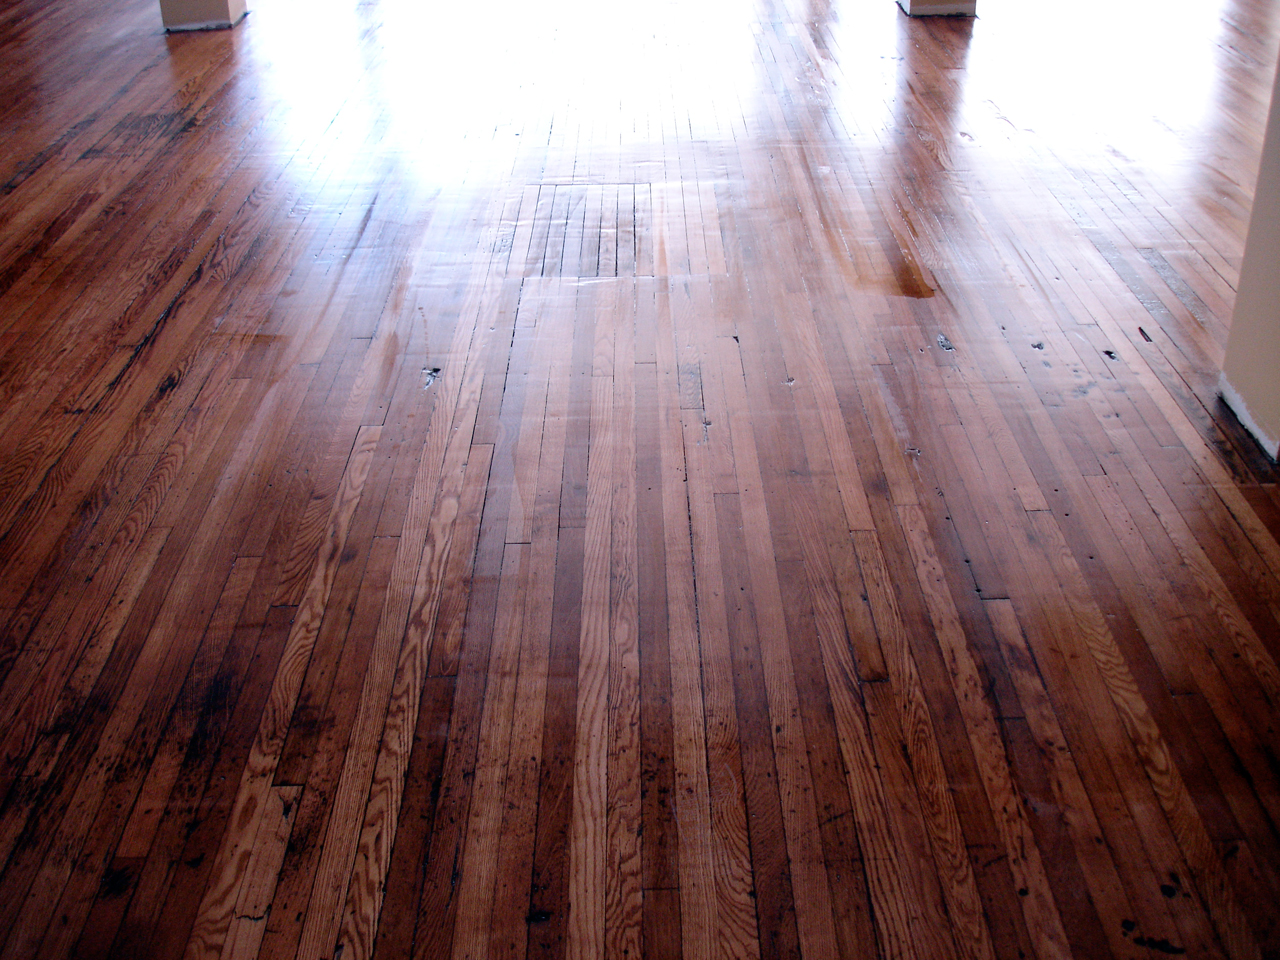 Shiny Hardwood Floor Installed in Saratoga